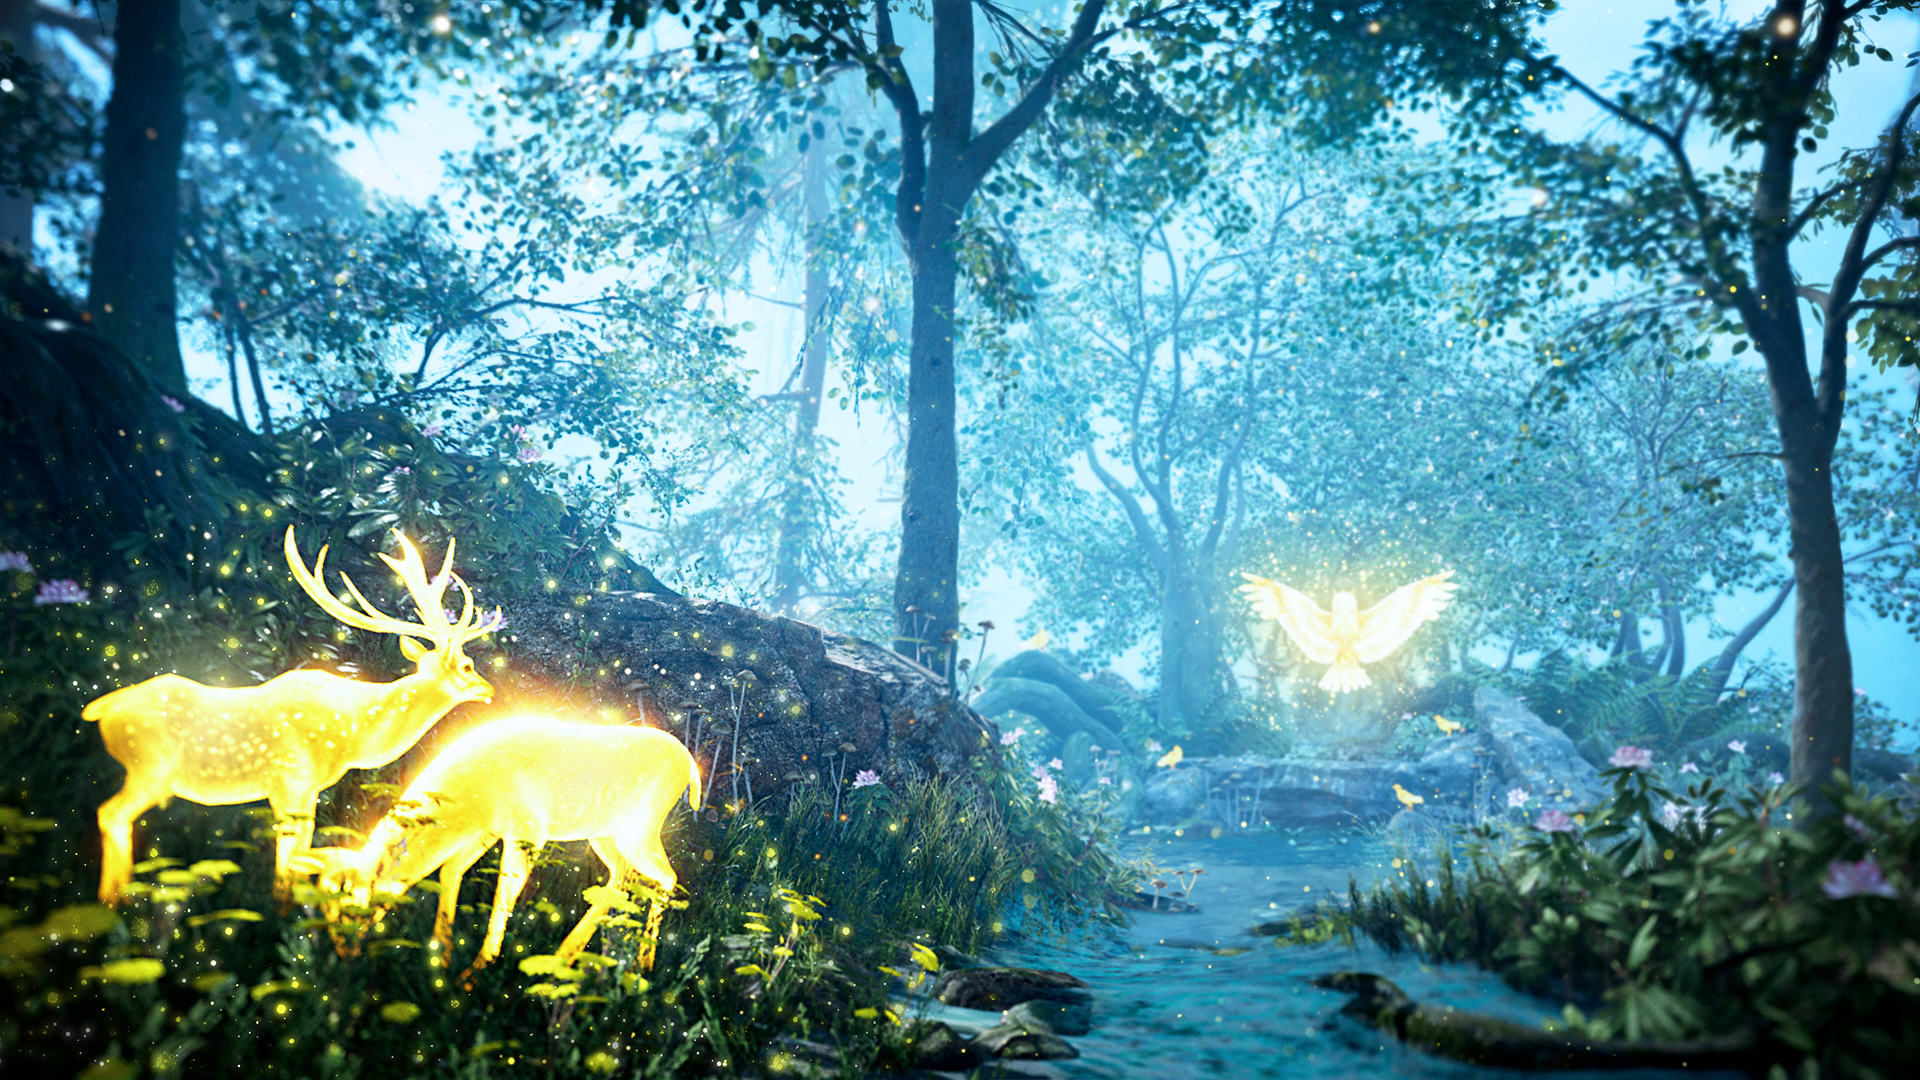 FCP 03 Owl Vision Screenshots PREVIEW PR 160126 6pm CET 1453716680 An Exclusive Look At Far Cry Primal Ahead Of Release Day